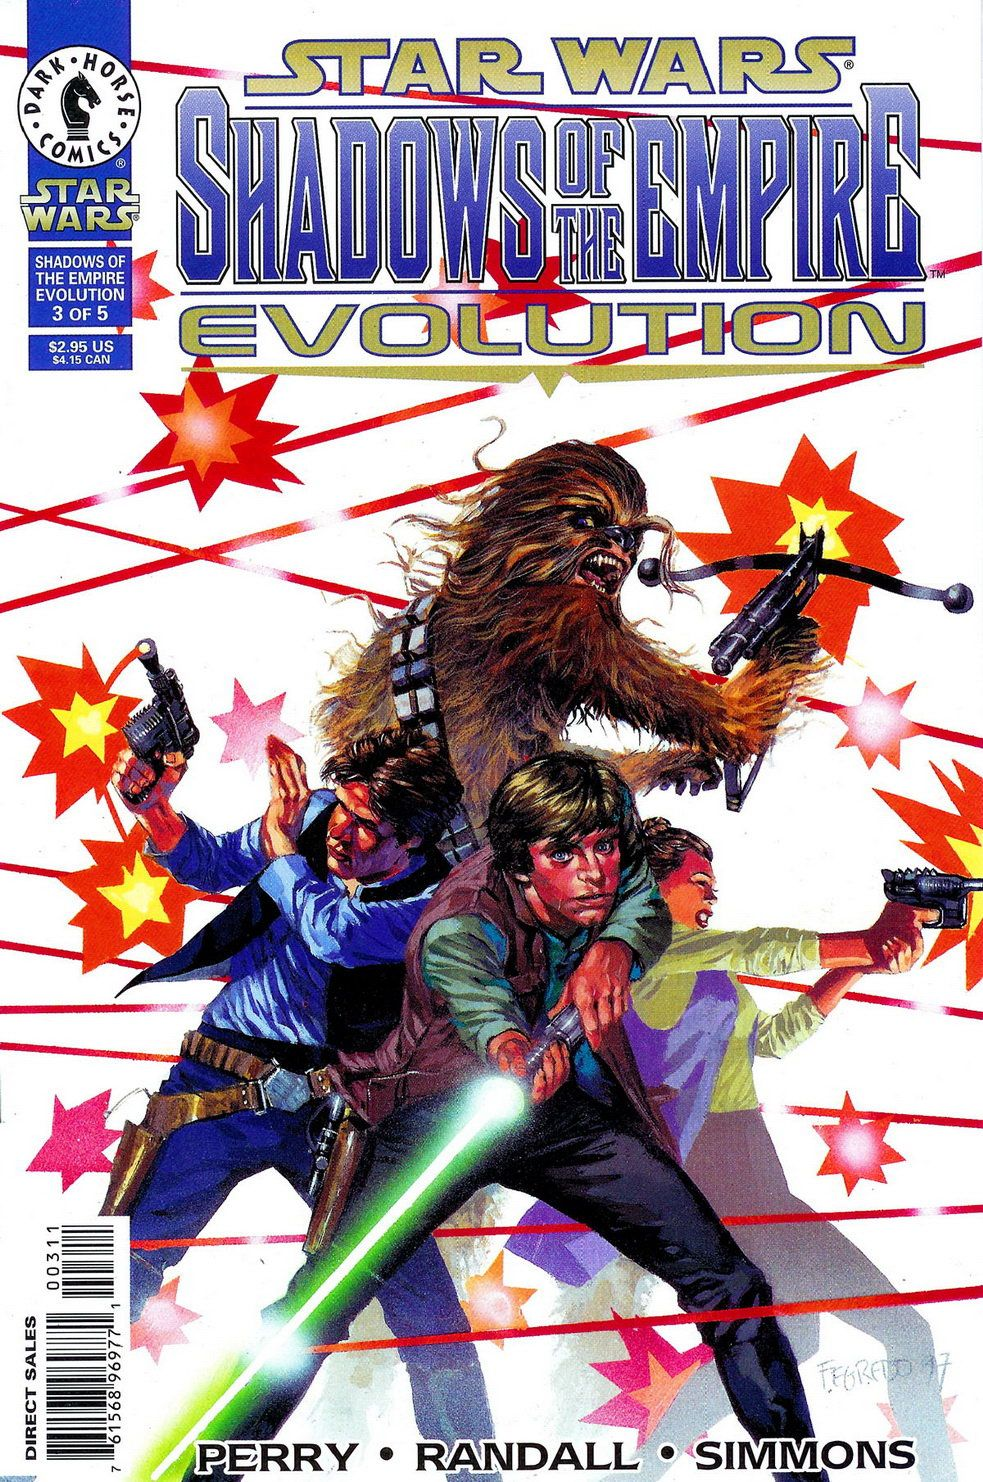 Star Wars: Shadows of the Empire: Evolution 3 of 5